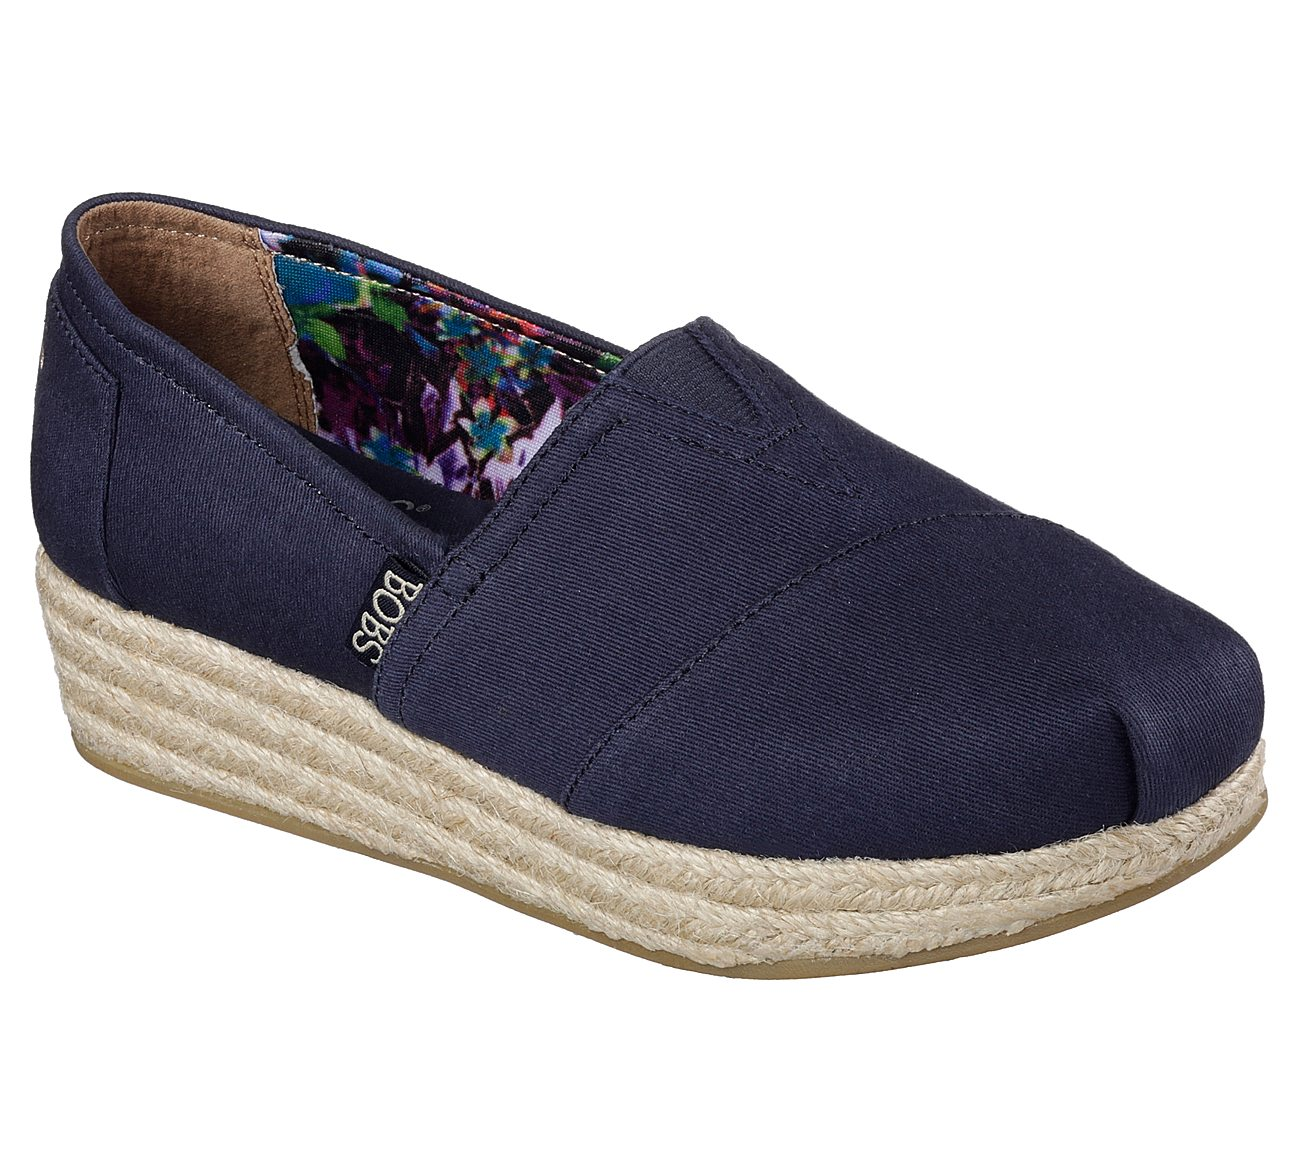 8a7dee076684e Buy SKECHERS Bobs - Highlights BOBS Shoes only $47.00